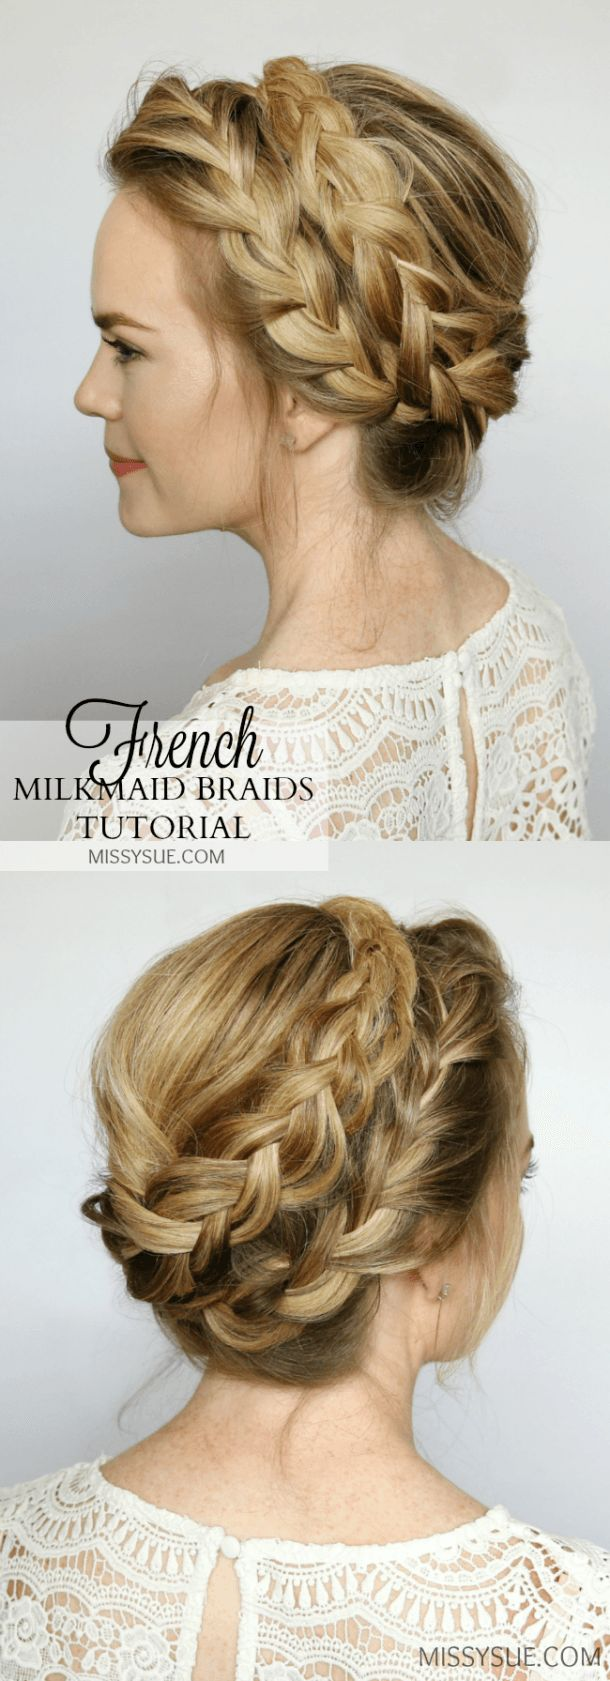 Magnificent 1000 Ideas About Braided Updo On Pinterest Braids Braided Hairstyles For Men Maxibearus